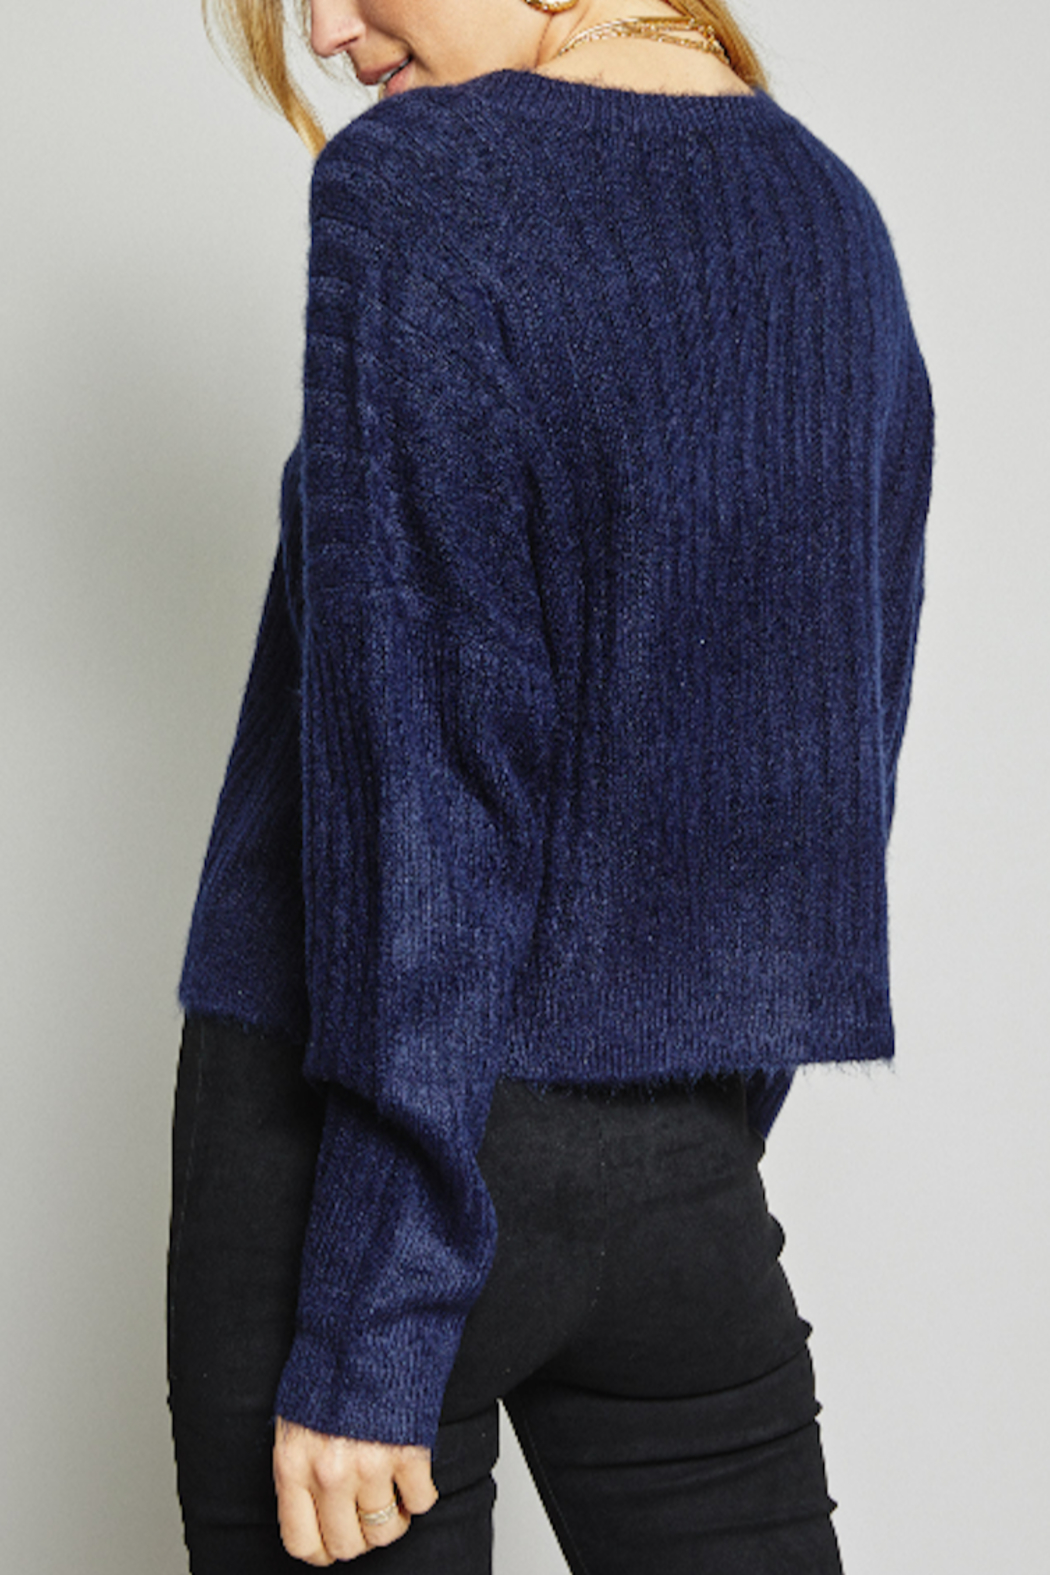 SAGE THE LABEL Young Stars Sweater - Front Full Image